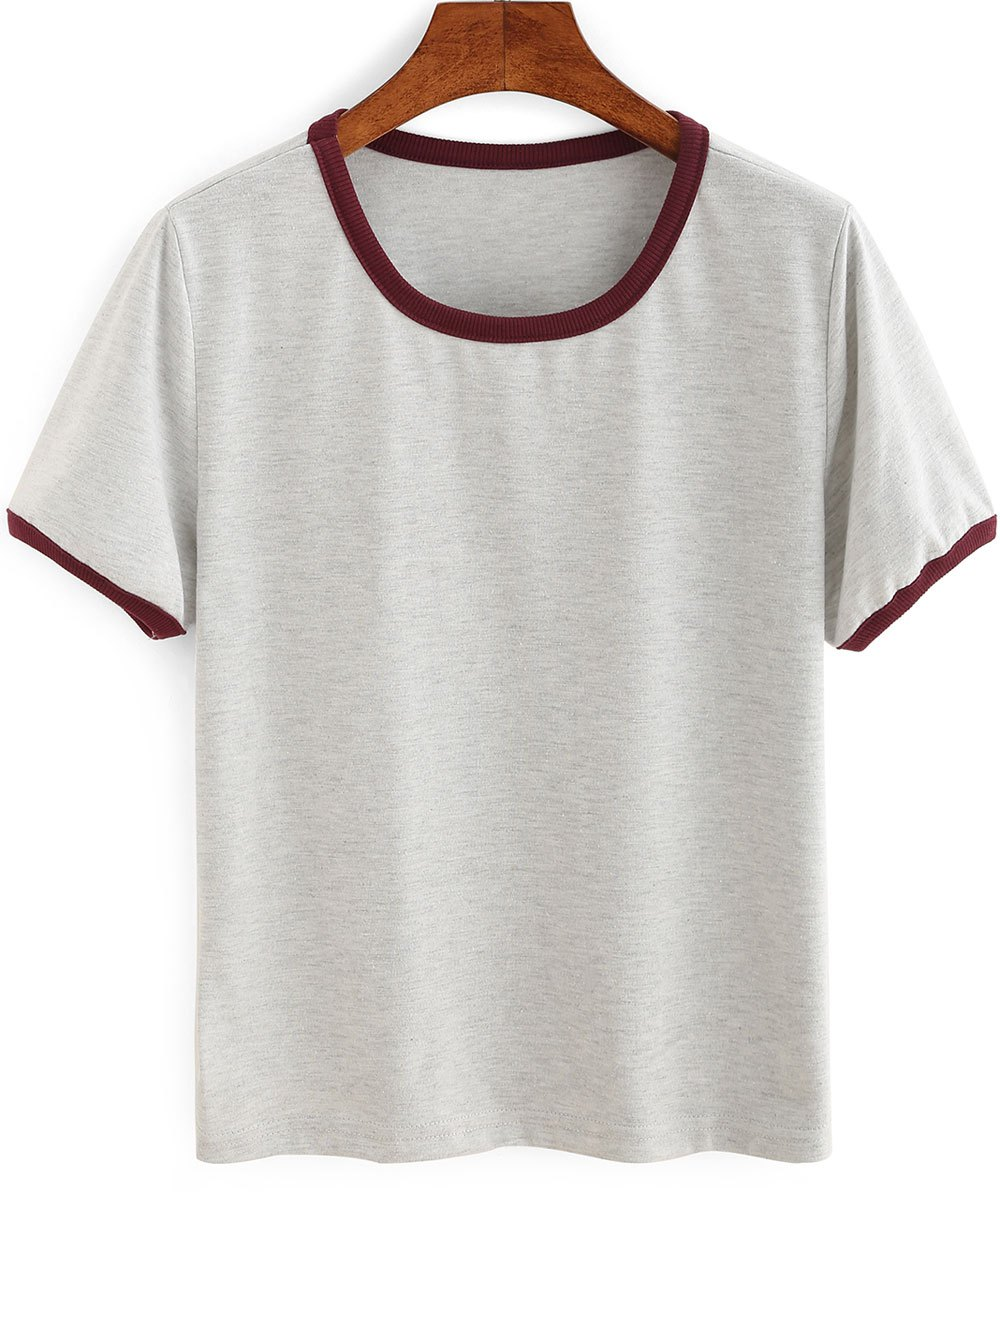 Short Sleeve Contrasting Piped T-Shirt